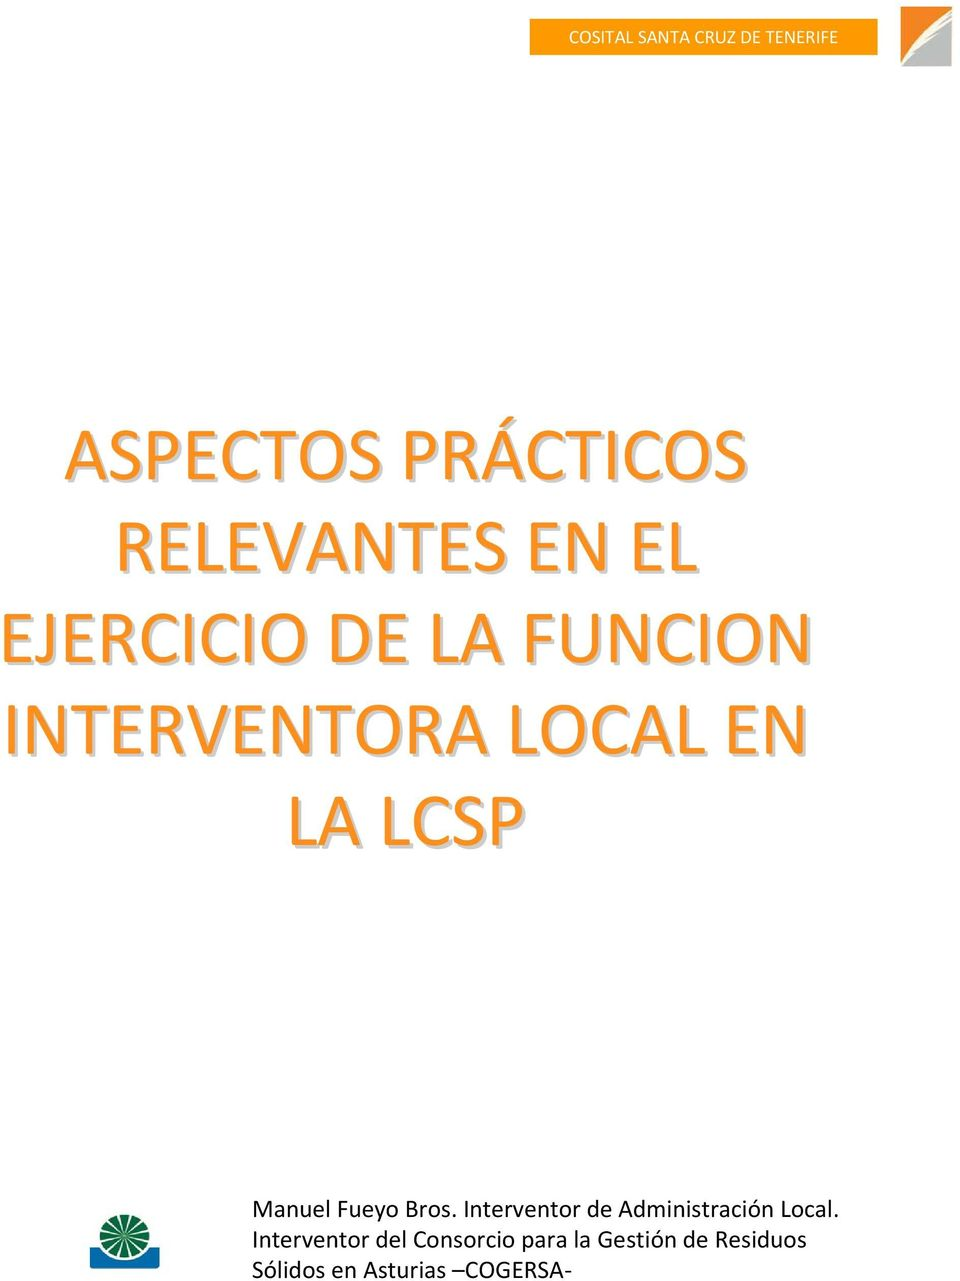 Interventor de Administración Local.